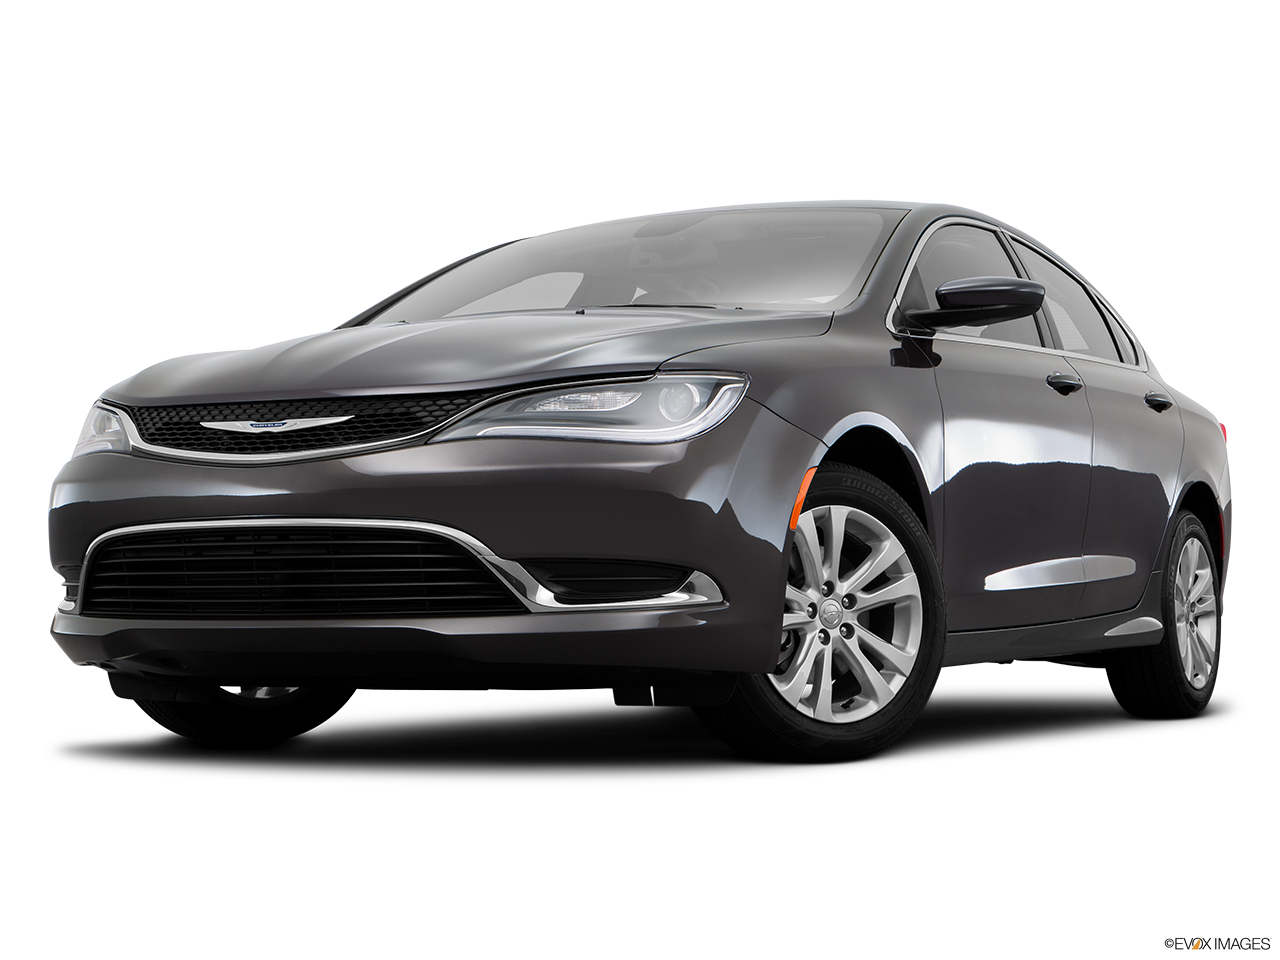 Advantages of the 2016 chrysler 200